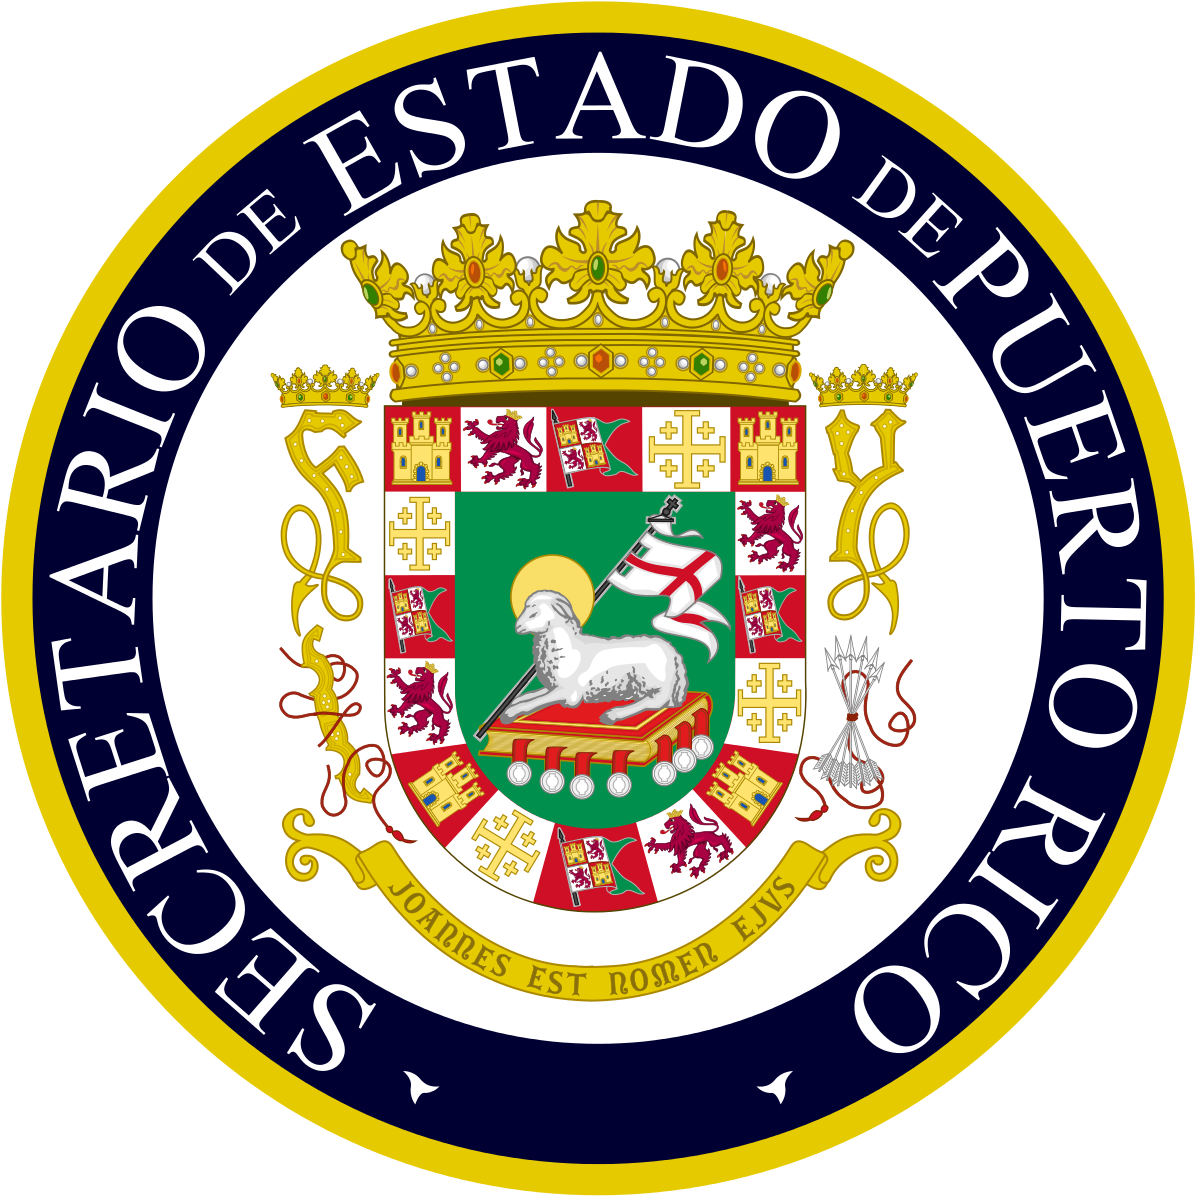 Puerto rico seal png. Secretary of state wikipedia